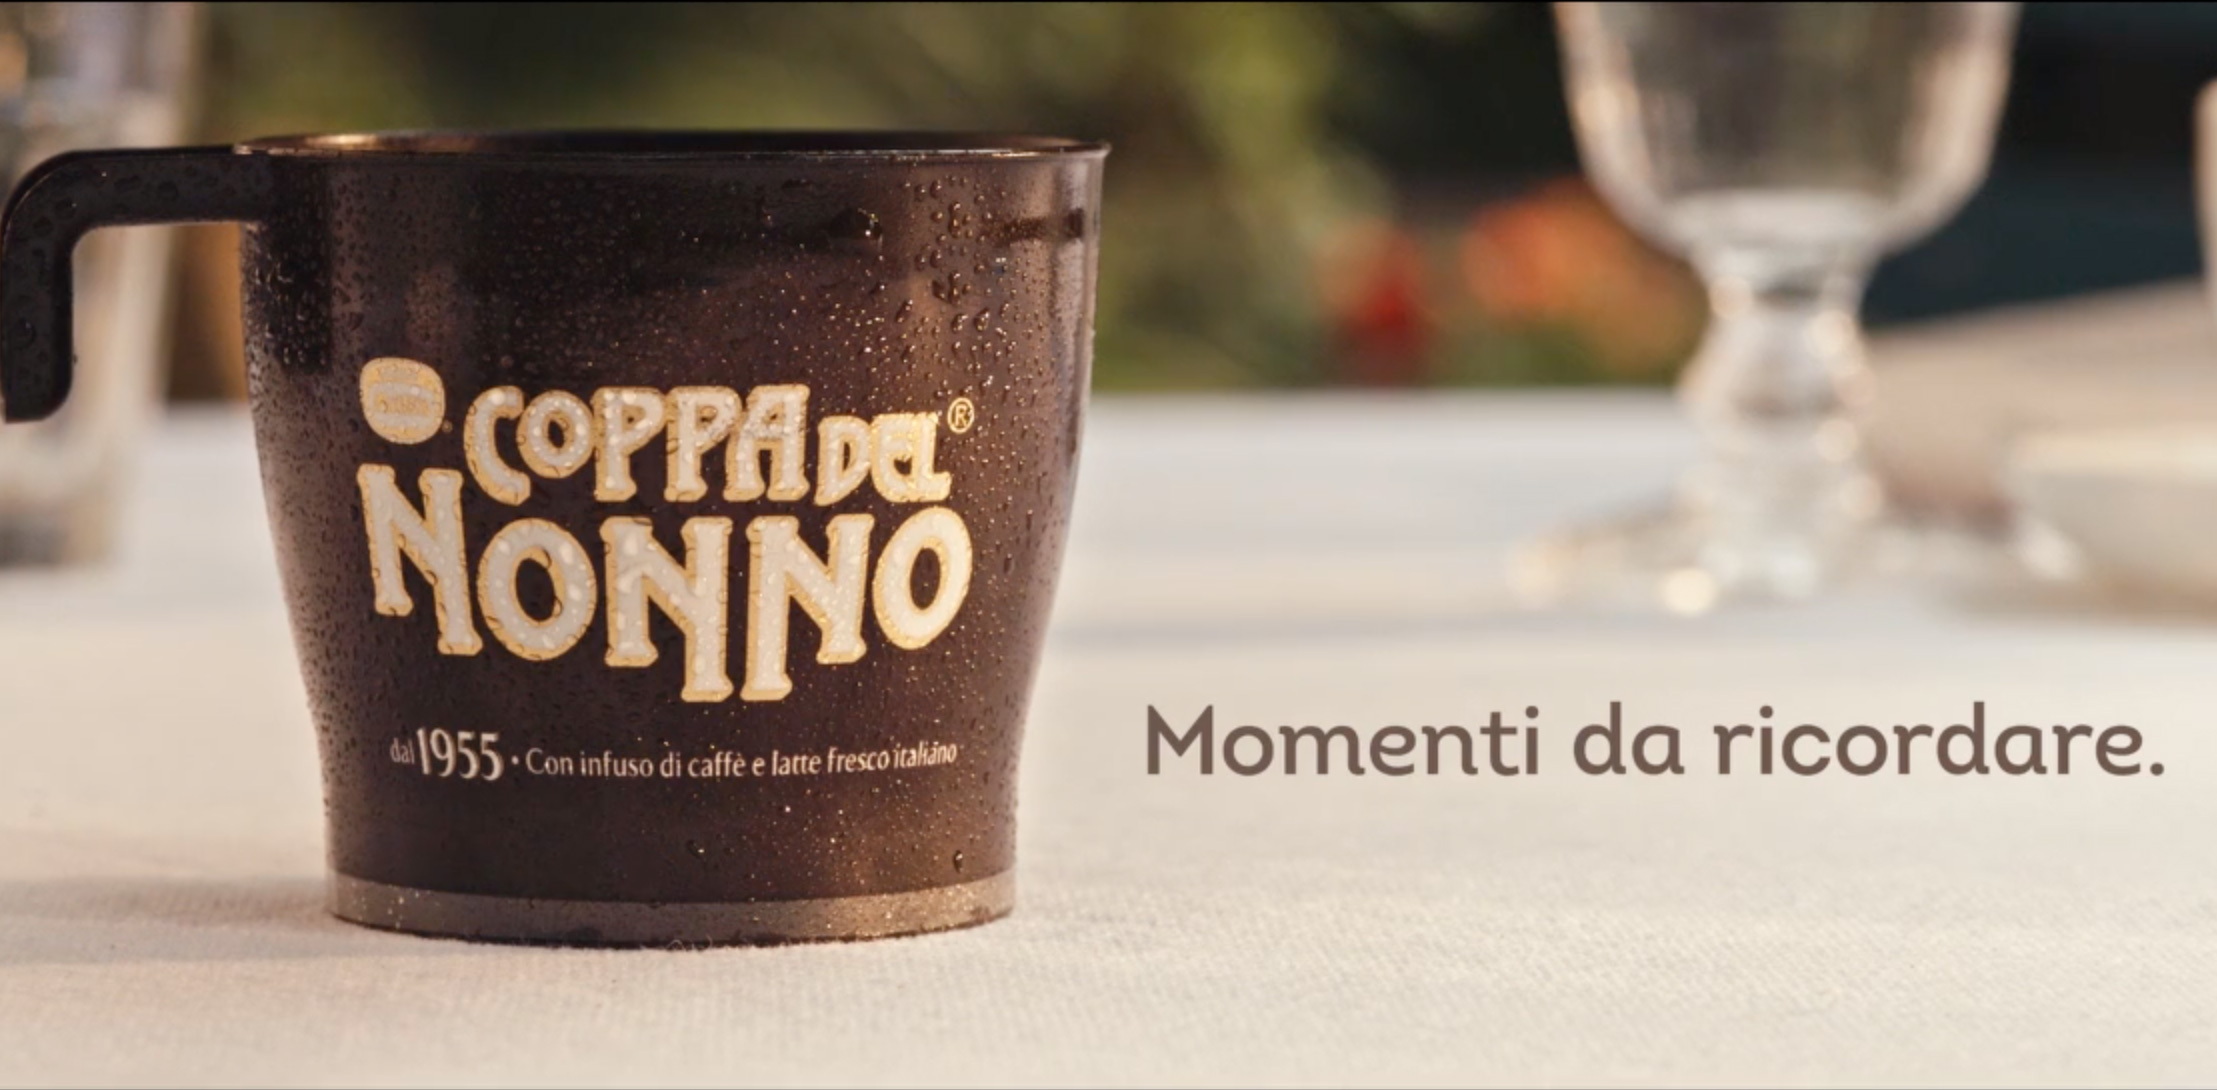 Coppa del Nonno TV Advert Freeze Frame